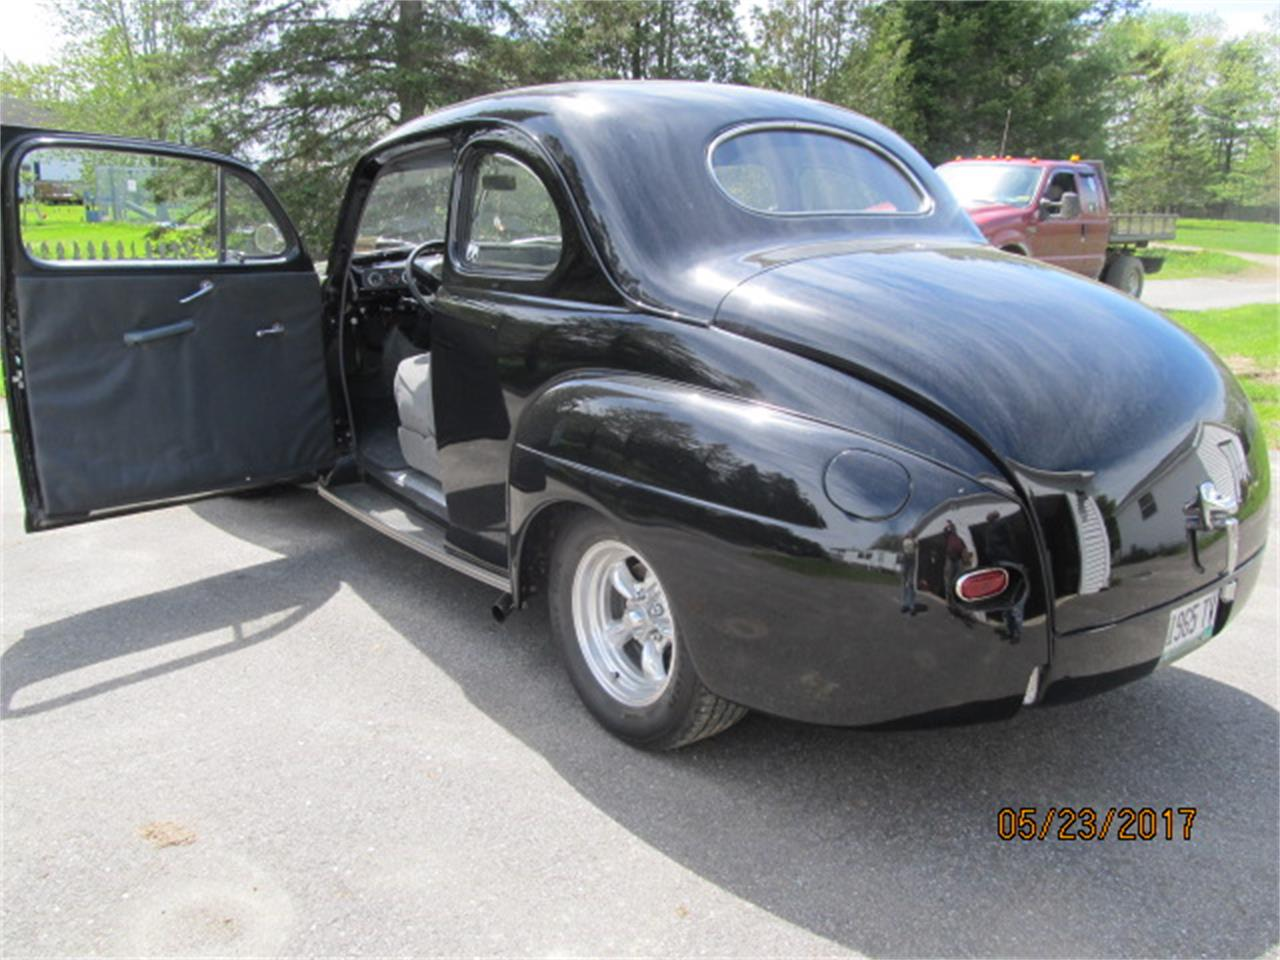 Large Picture of Classic '46 Mercury Coupe - $19,500.00 Offered by a Private Seller - KPM8